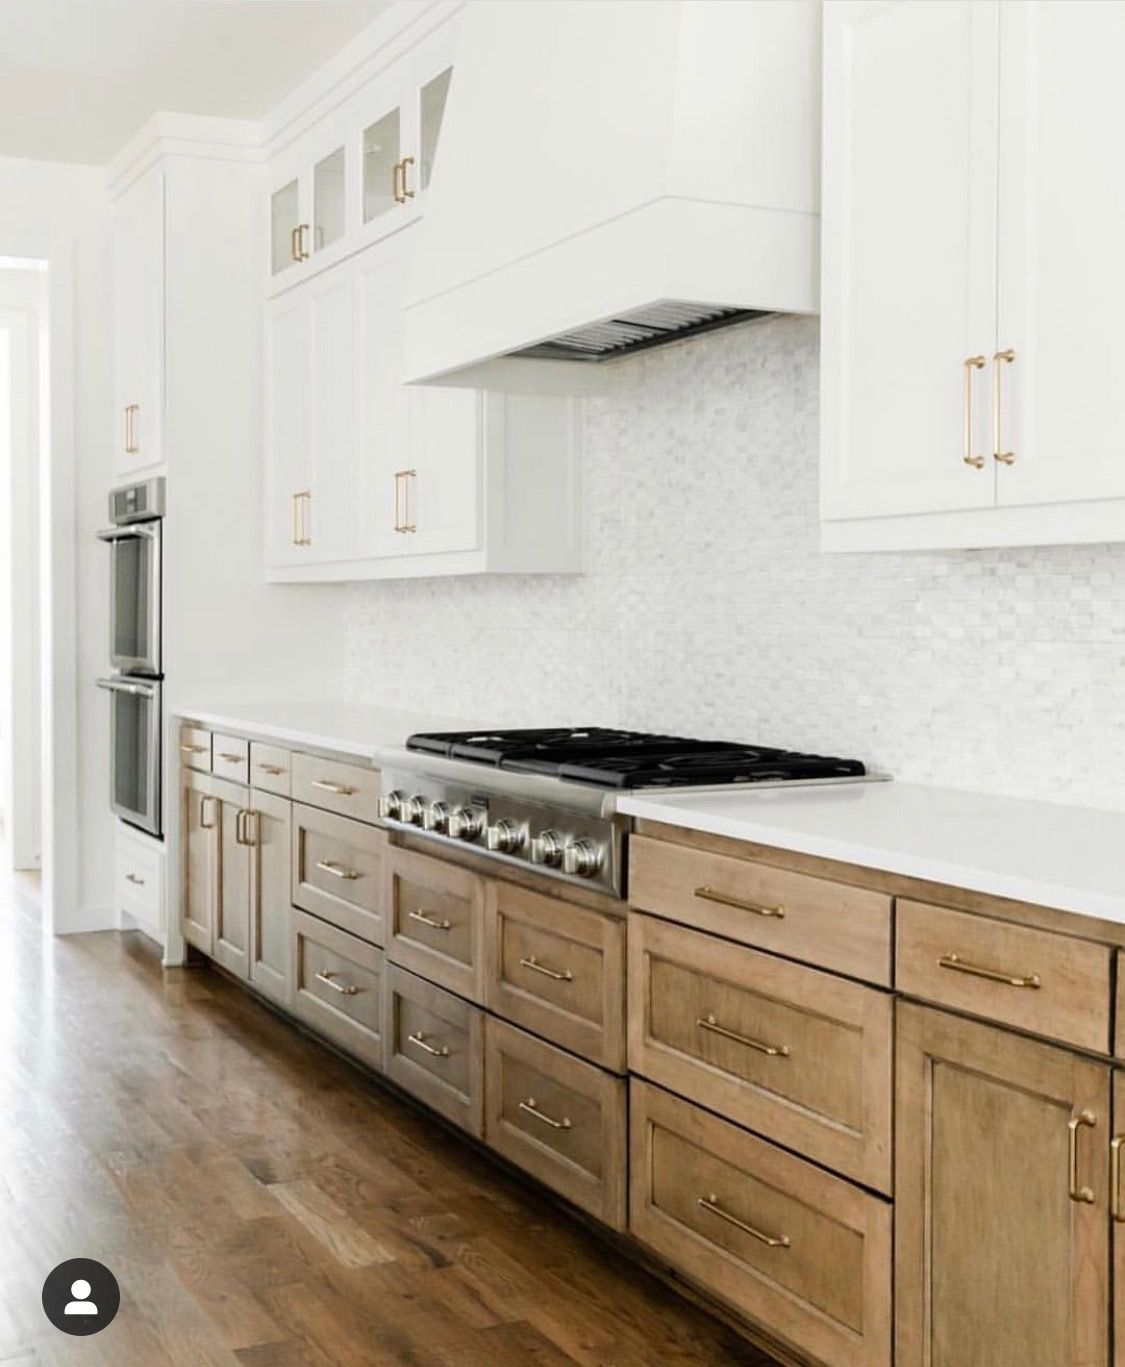 Base Cabinet Works With White Uppers Backsplash Should Have A Punch Of Gold To Tie It All Together Kitchen Design Home Remodeling Kitchen Renovation